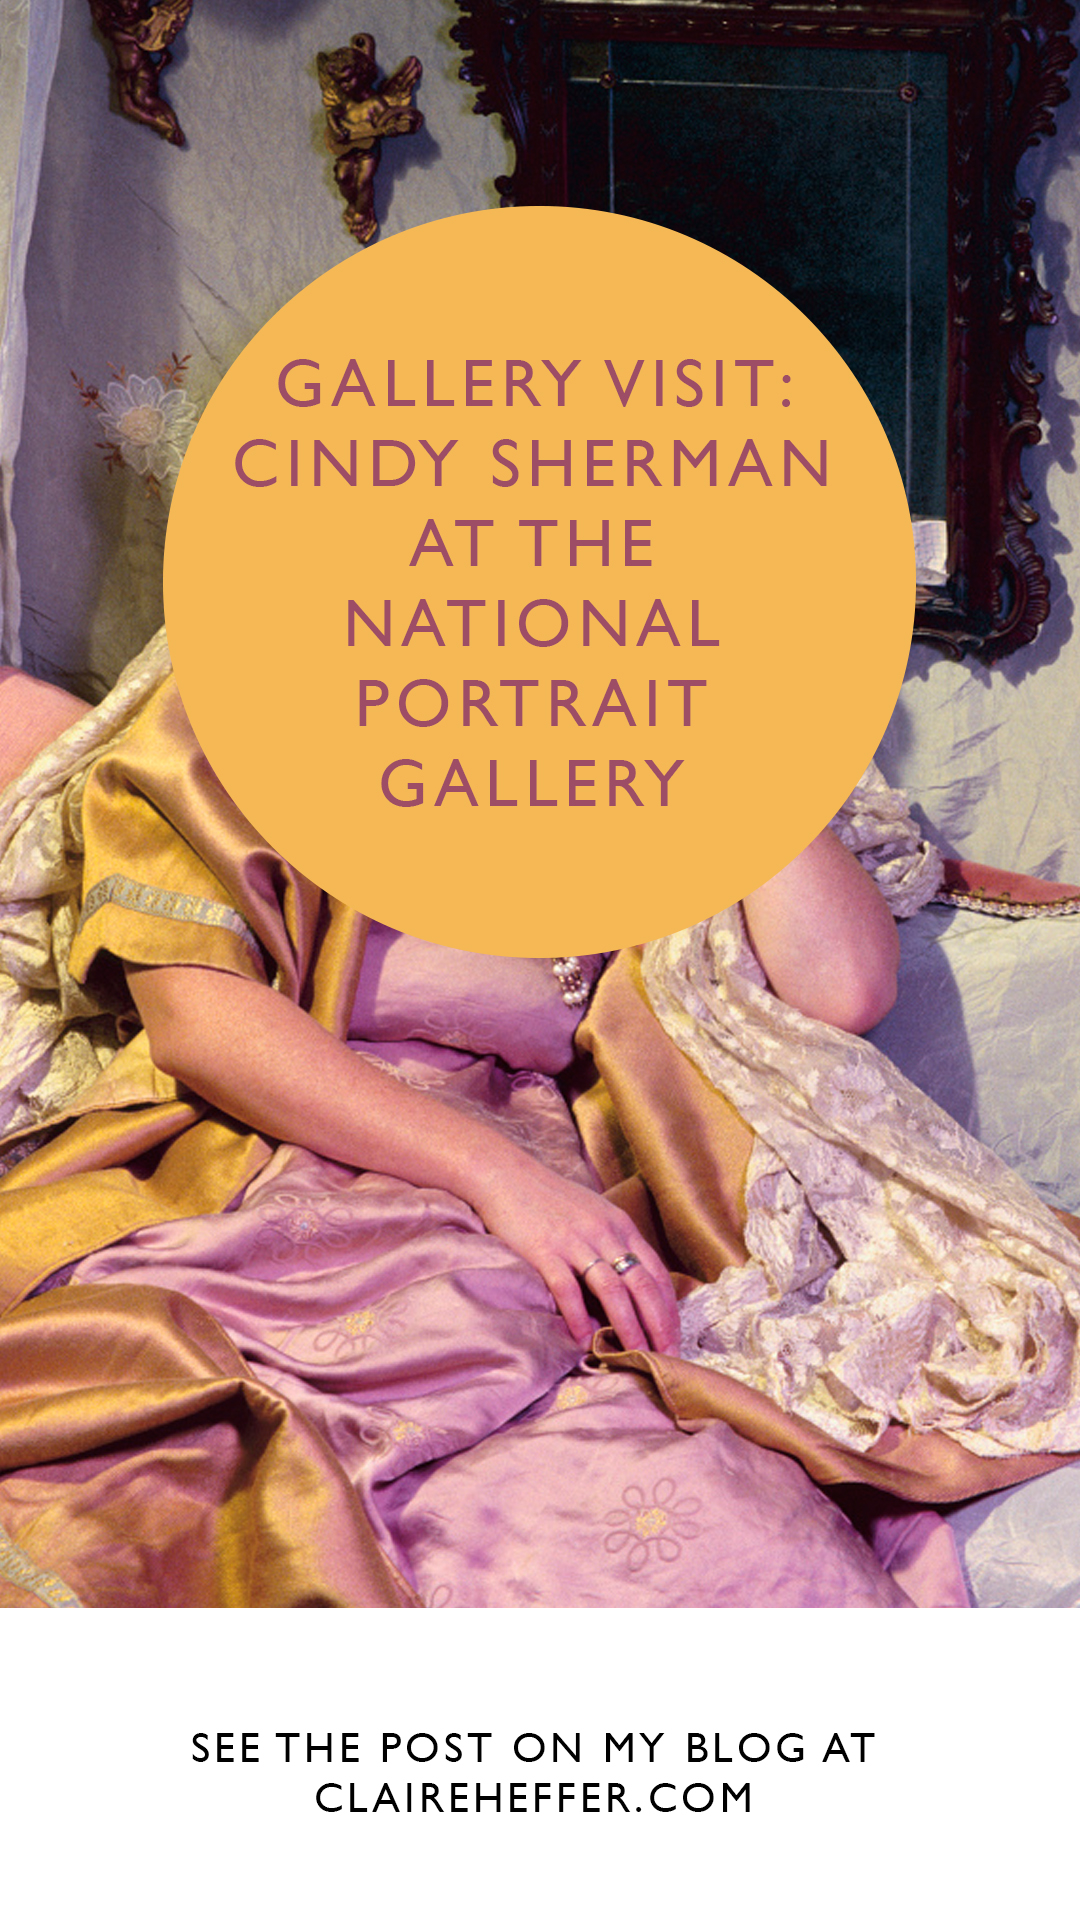 GALLERY VISIT: CINDY SHERMAN AT THE NATIONAL PORTRAIT GALLERY